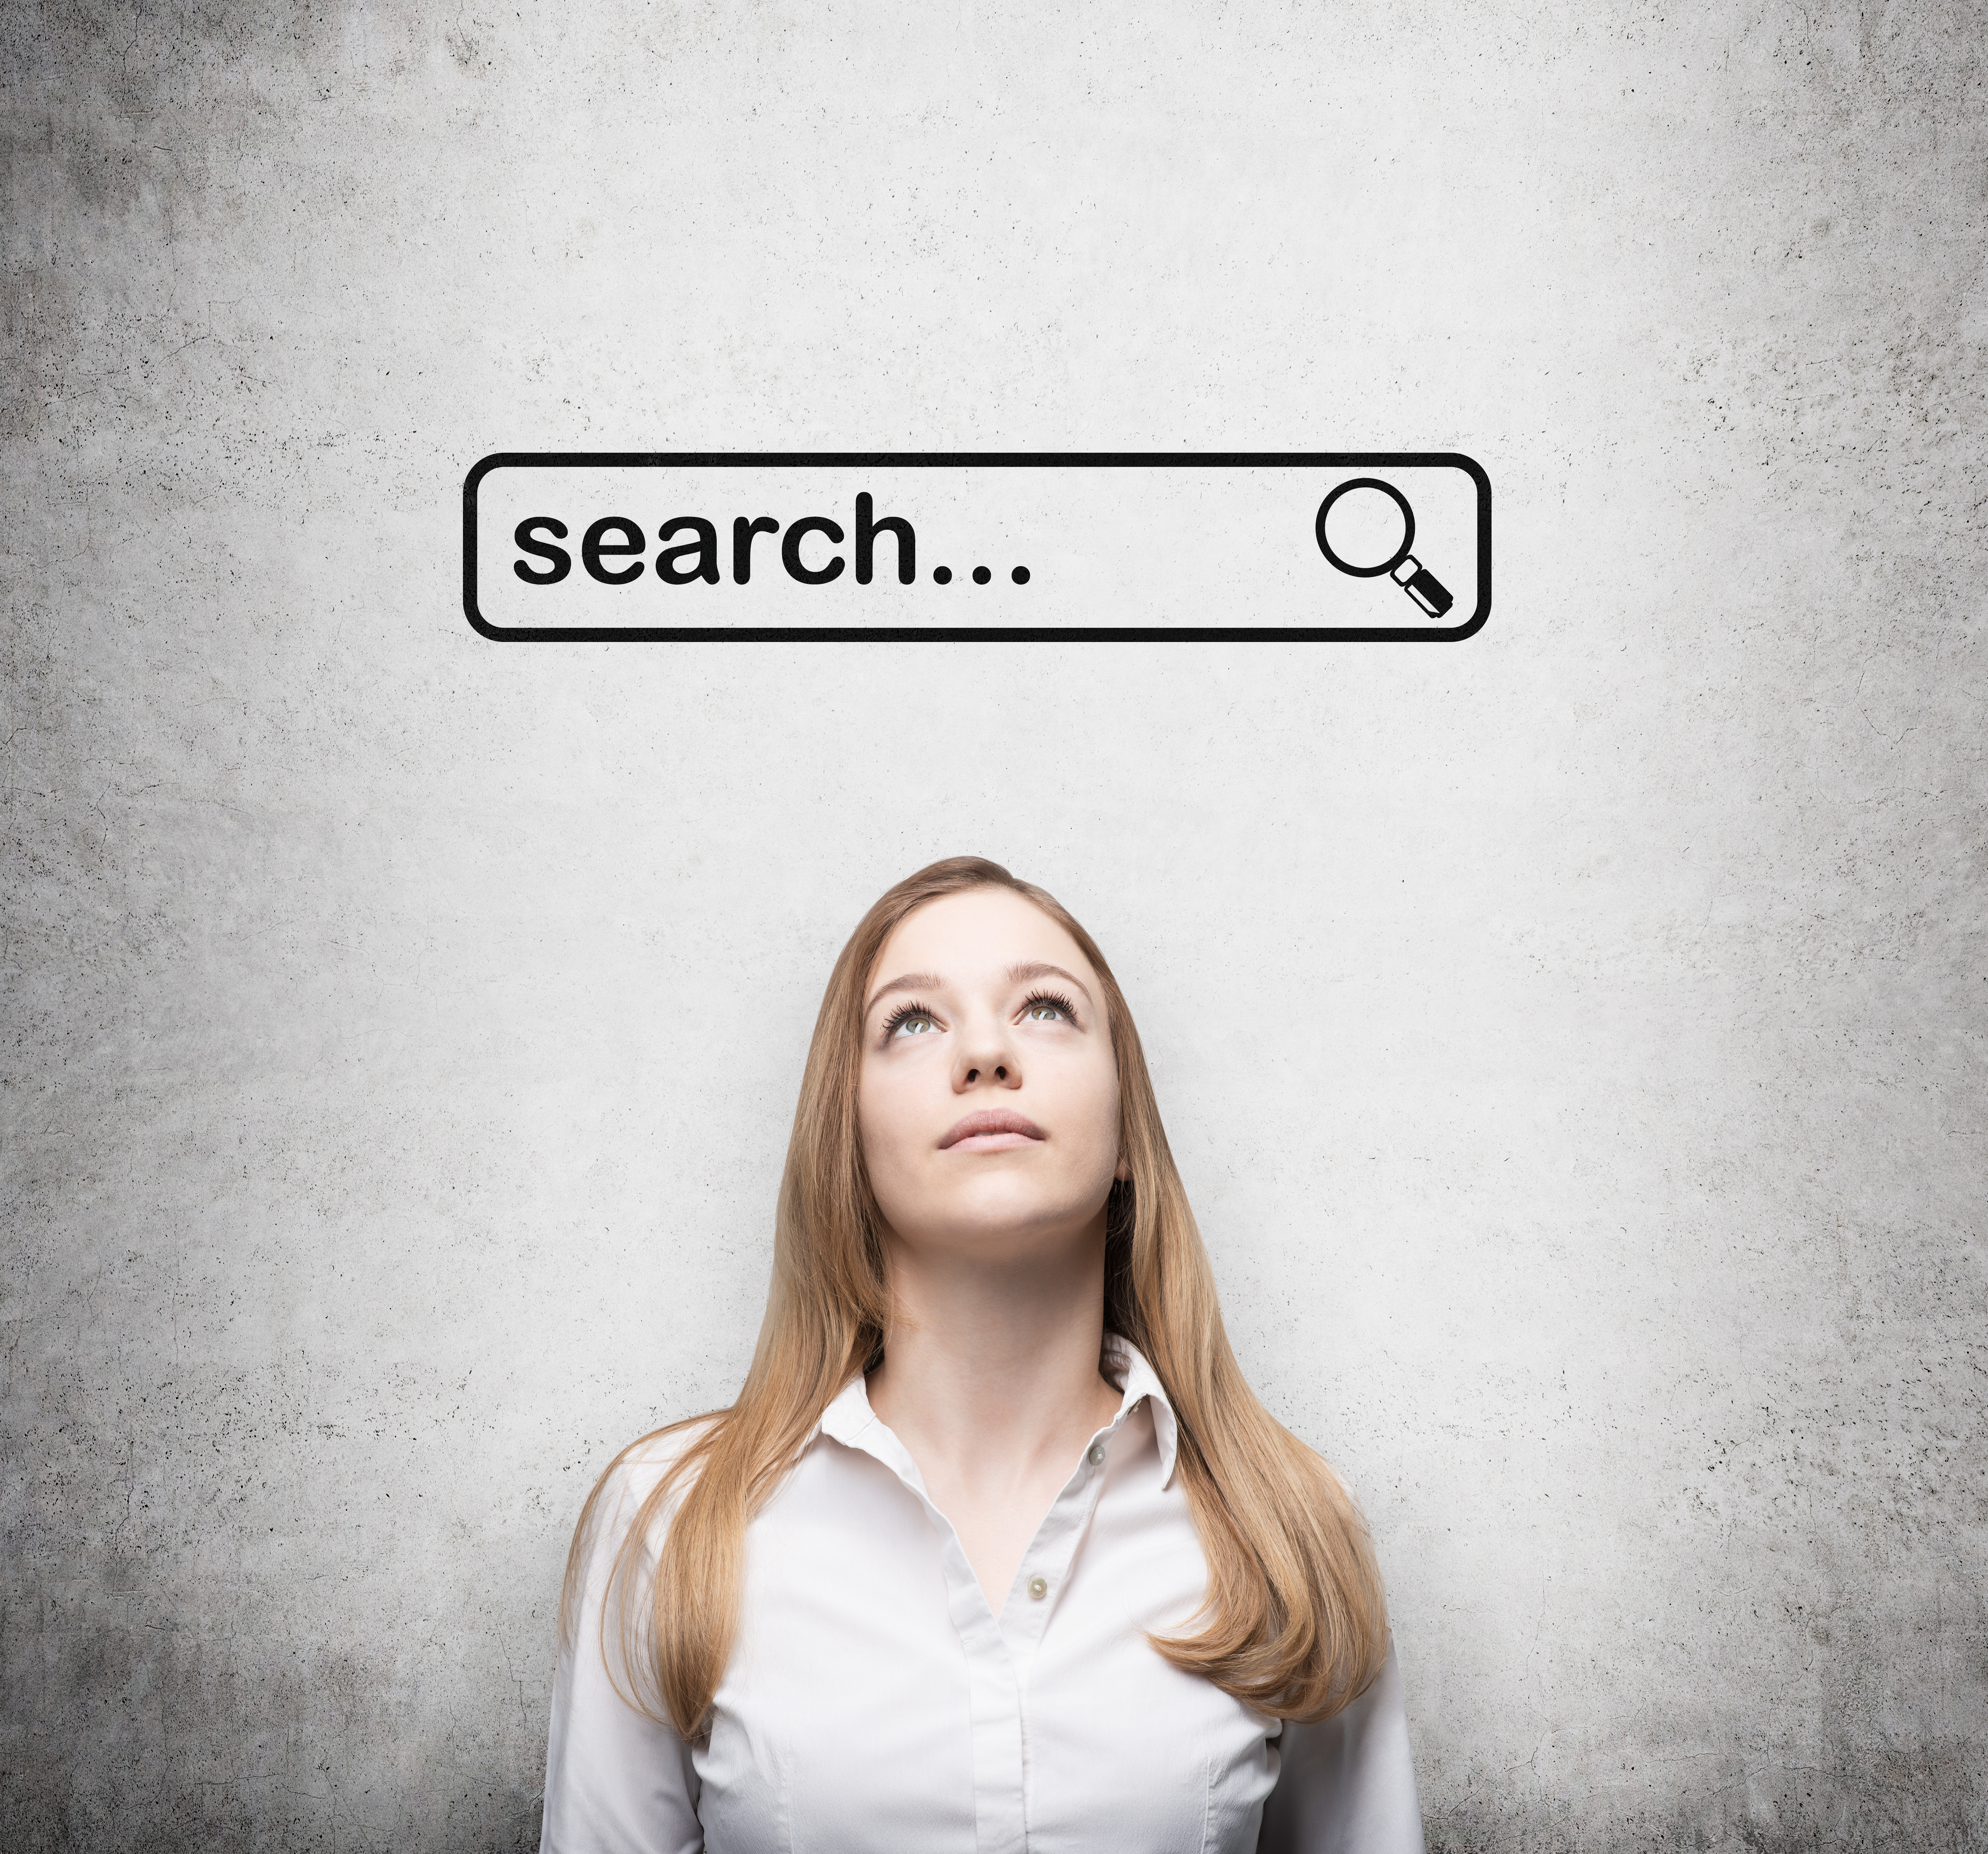 RoboWP - Global SEO Agency - Woman Searching